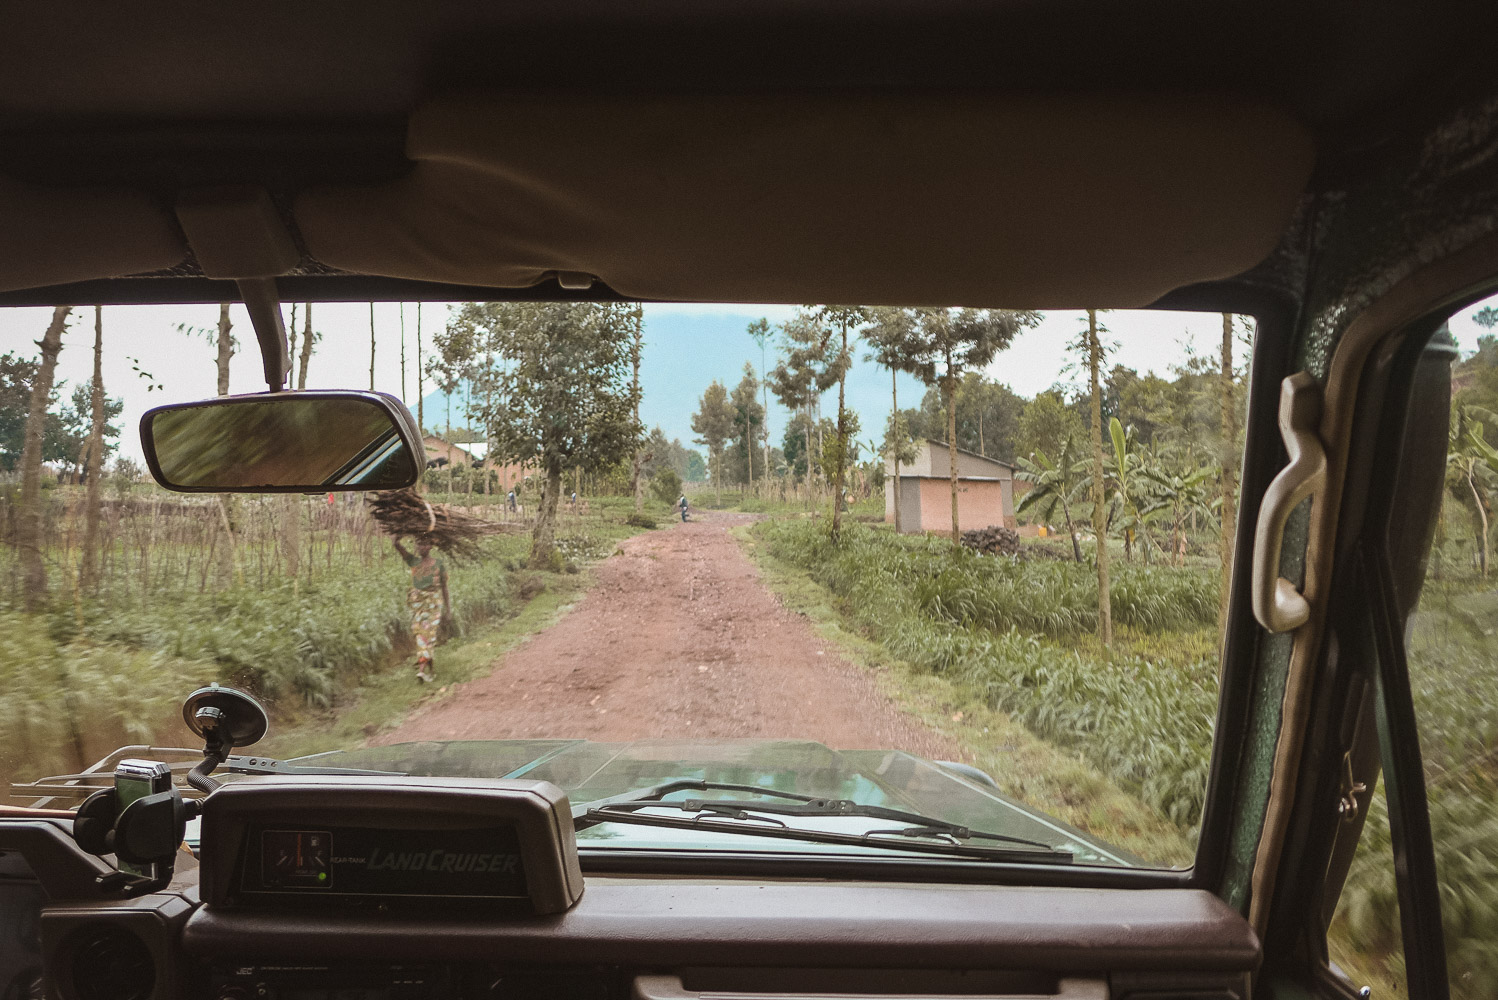 Drive to Parc National des Volcans for Gorilla trekking